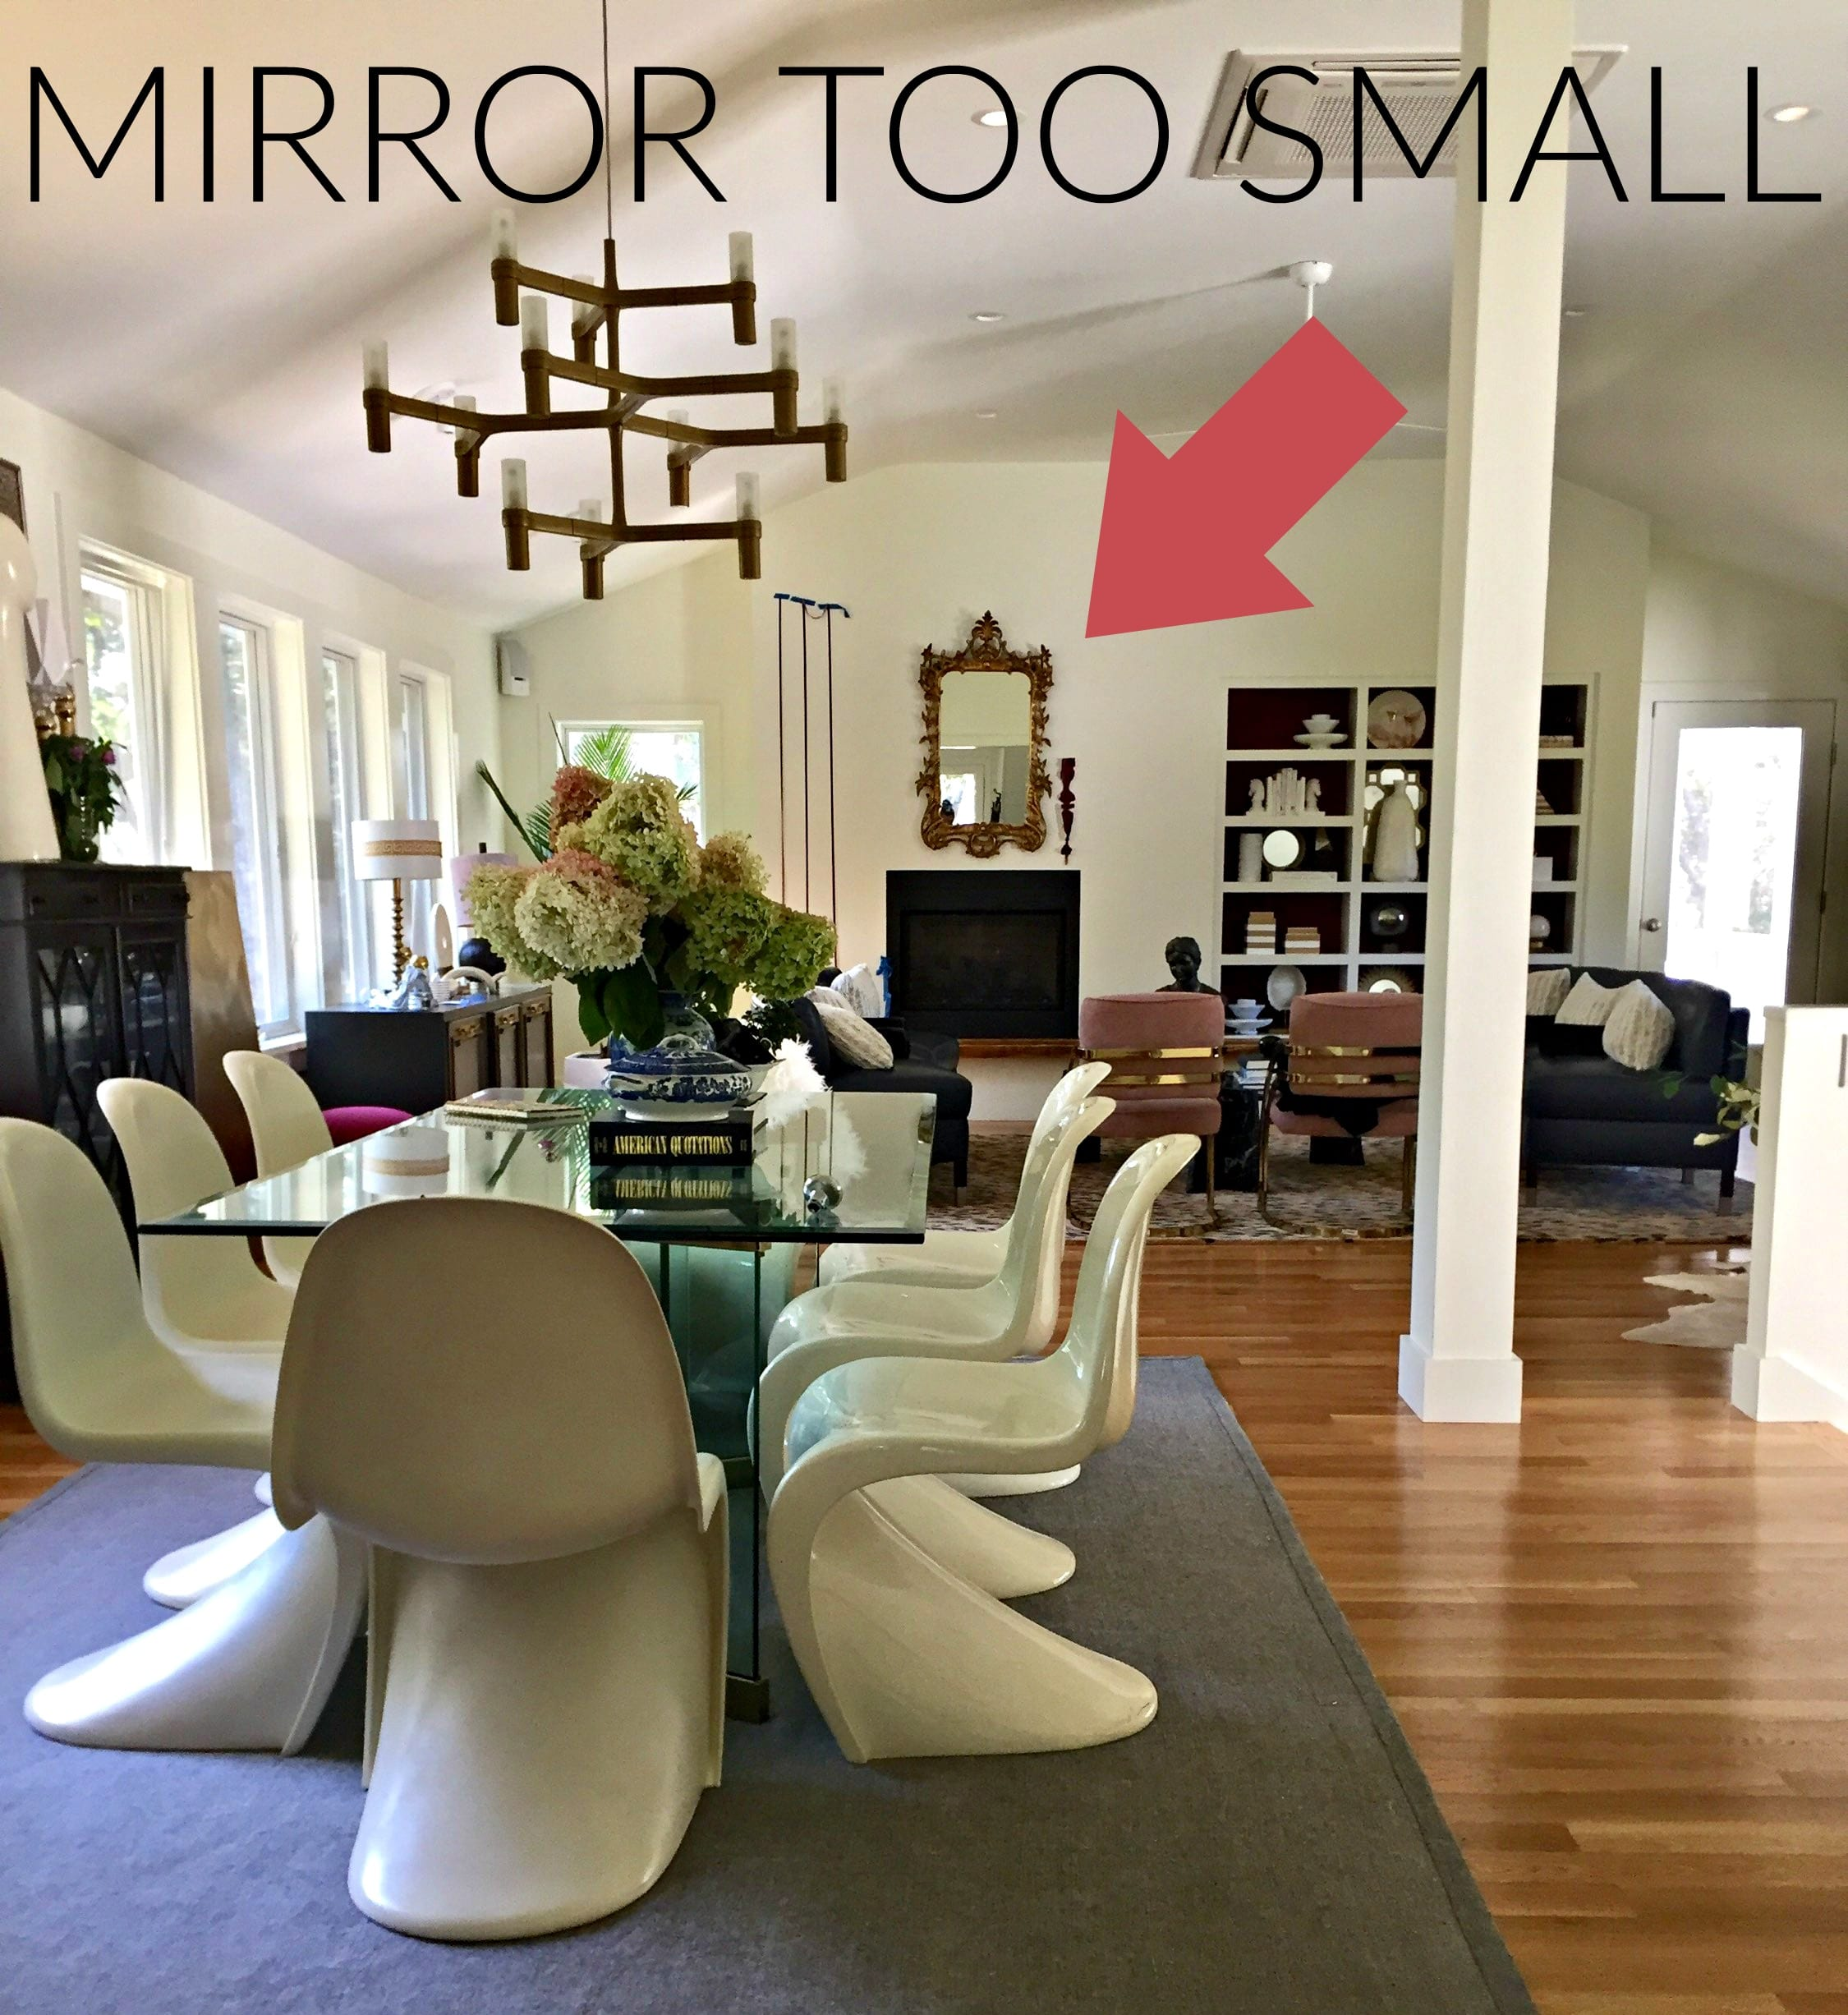 You've got to see this One Room Challenge Make-overs ||antique mirror,  Jeweledinteriors, One Room Challenge, ORC, parisian, apartment, rental, diy, zebra, milo baughman, navy, velvet, silk, curtains, brass, gold, chic, hardwood floors, antique, mirror, eclectic, kelly wearstler, pillow, kate spade, lamp, powder blue, obelisk, victorian, 1980's, vintage, living room, chic, panton, chair, great room